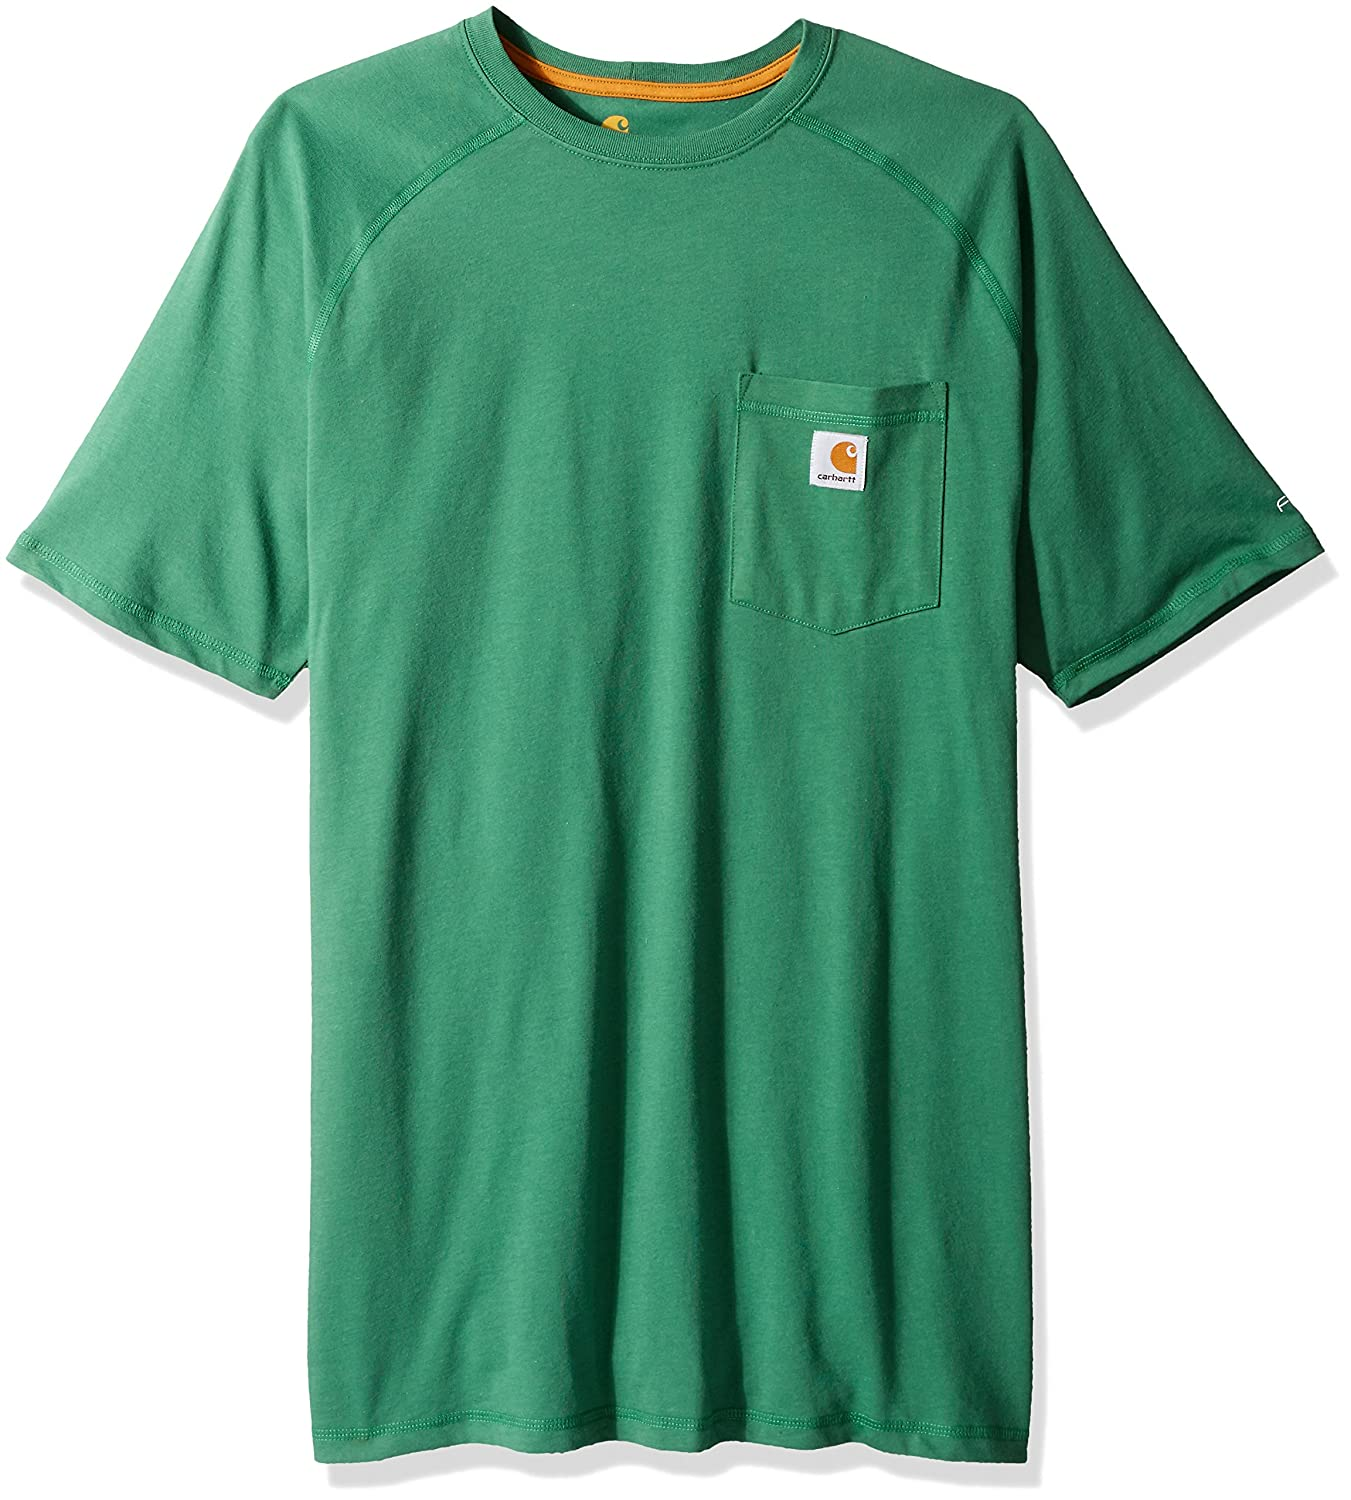 Carhartt SHIRT メンズ B06W9KZDJG XXXX-Large|Botanical Green Botanical Green XXXX-Large